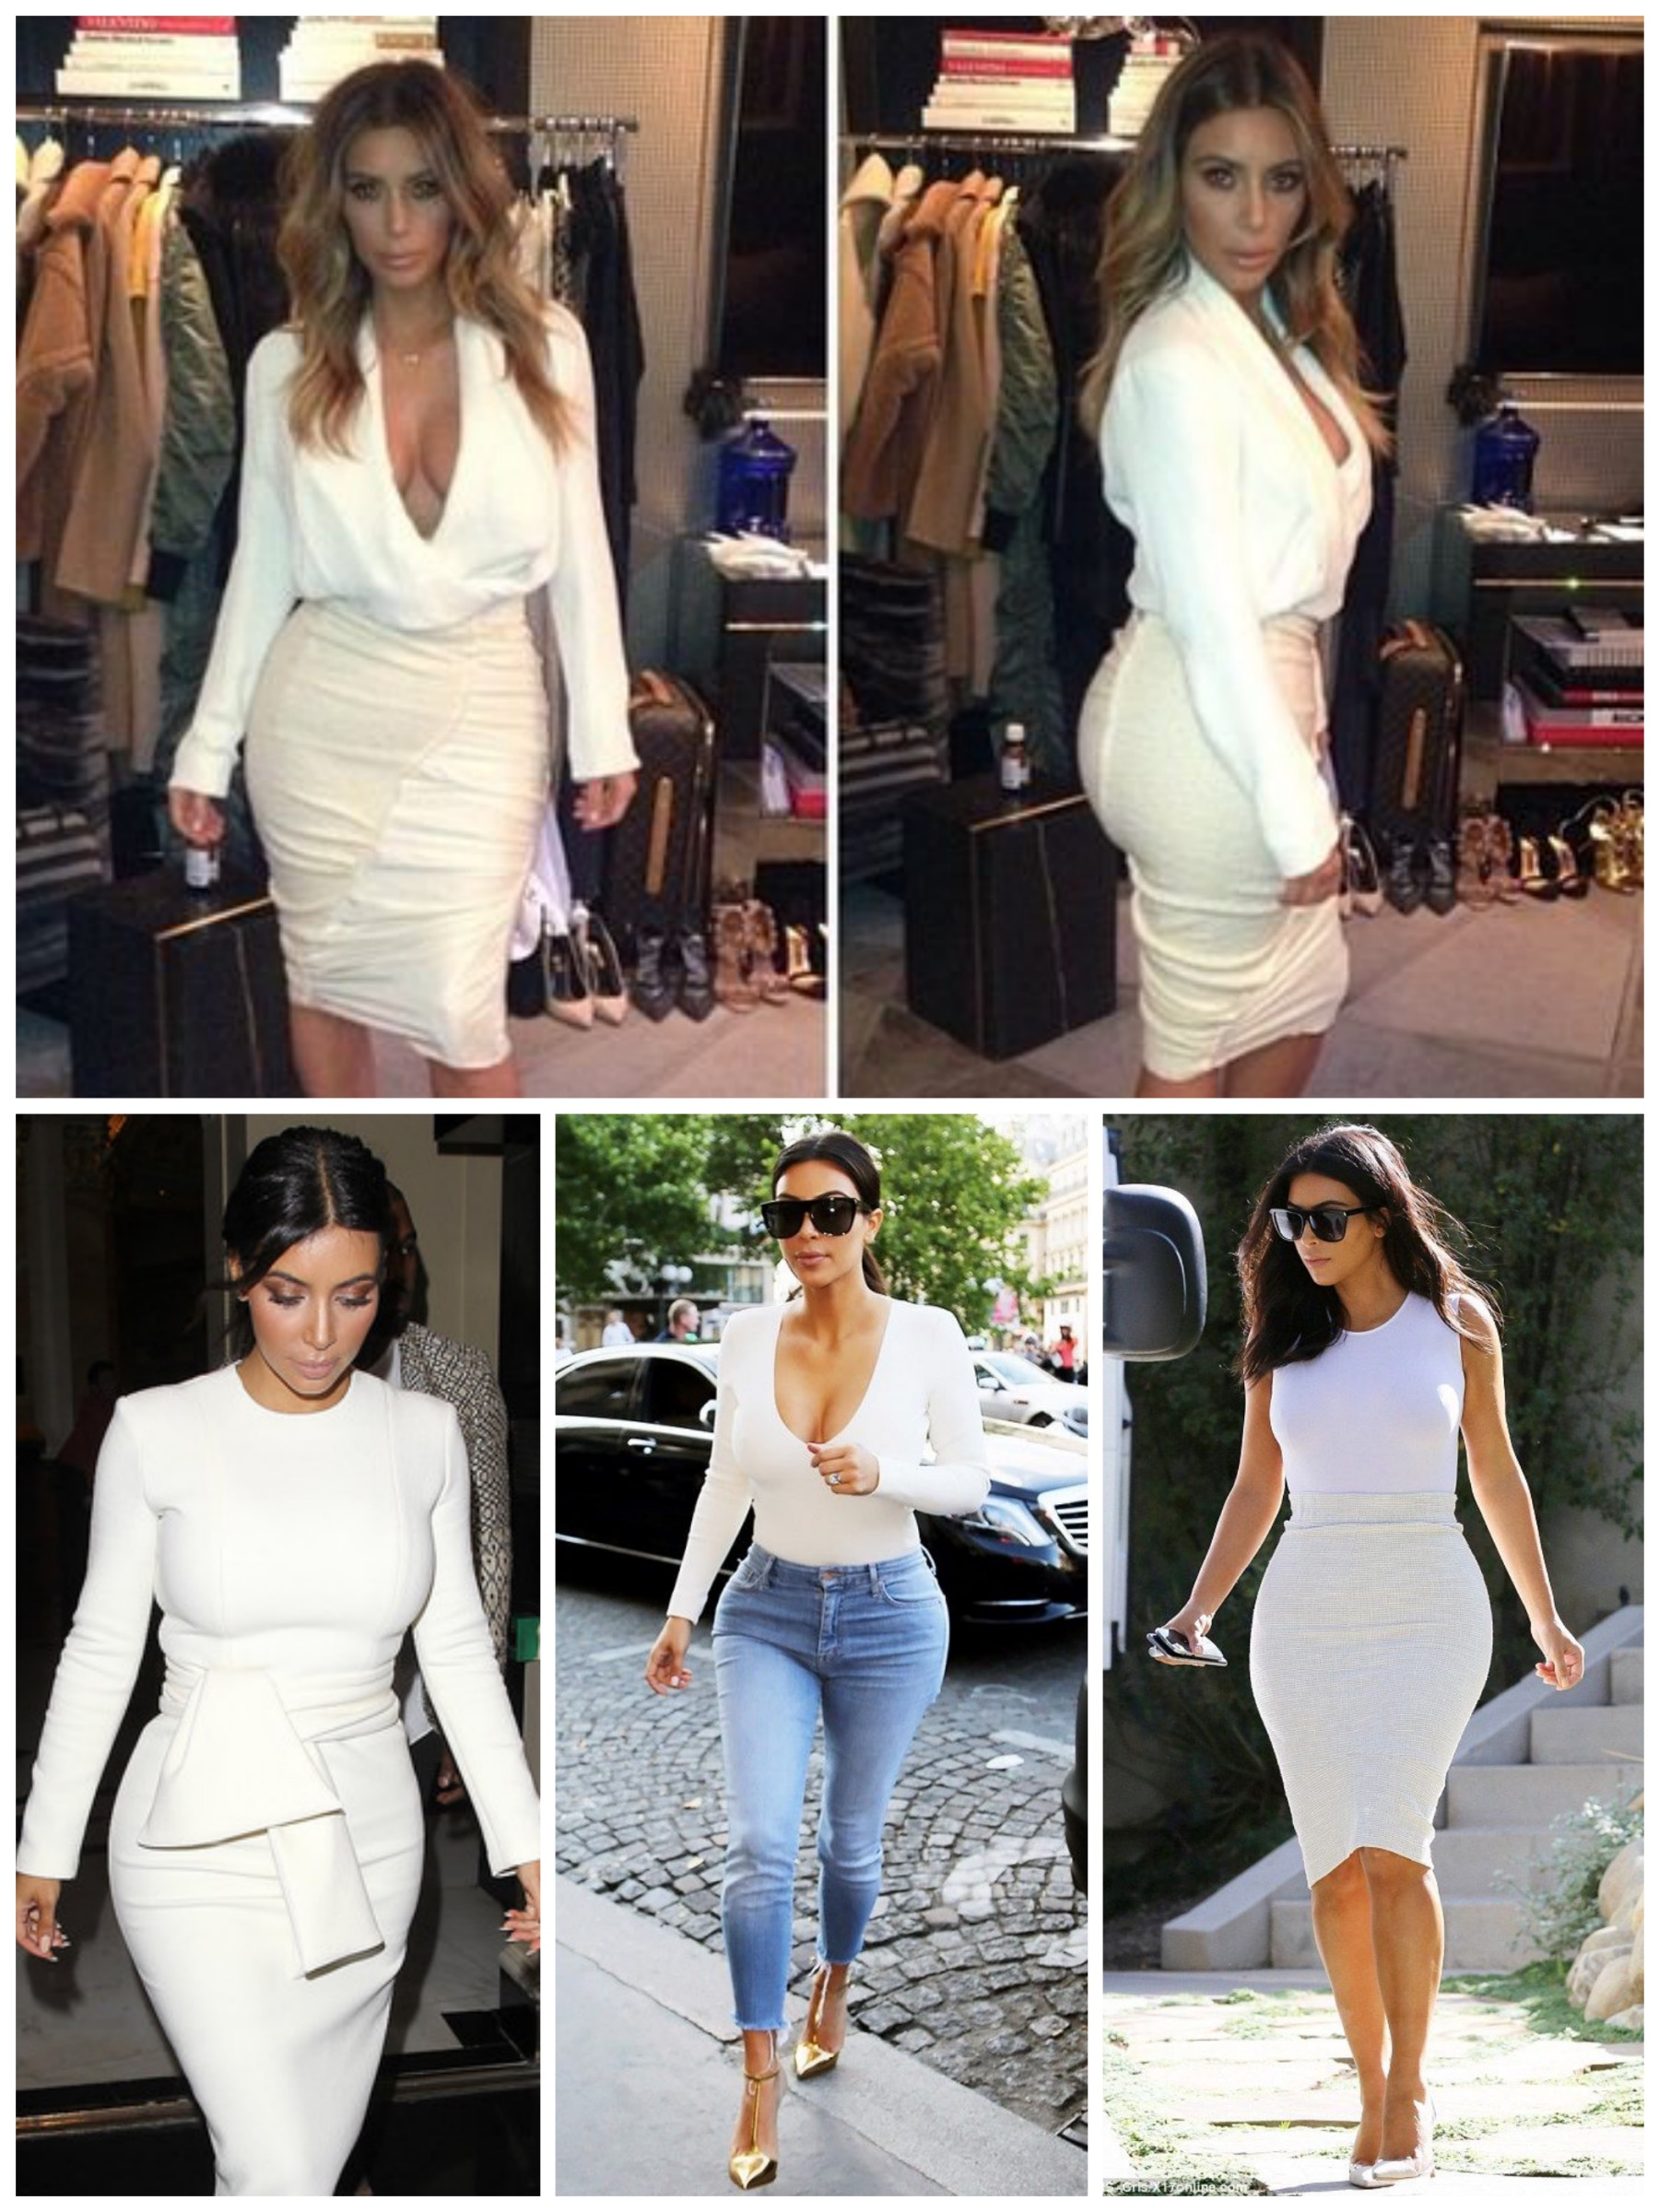 Kim's style after Kanye - Simple but still sexy in white